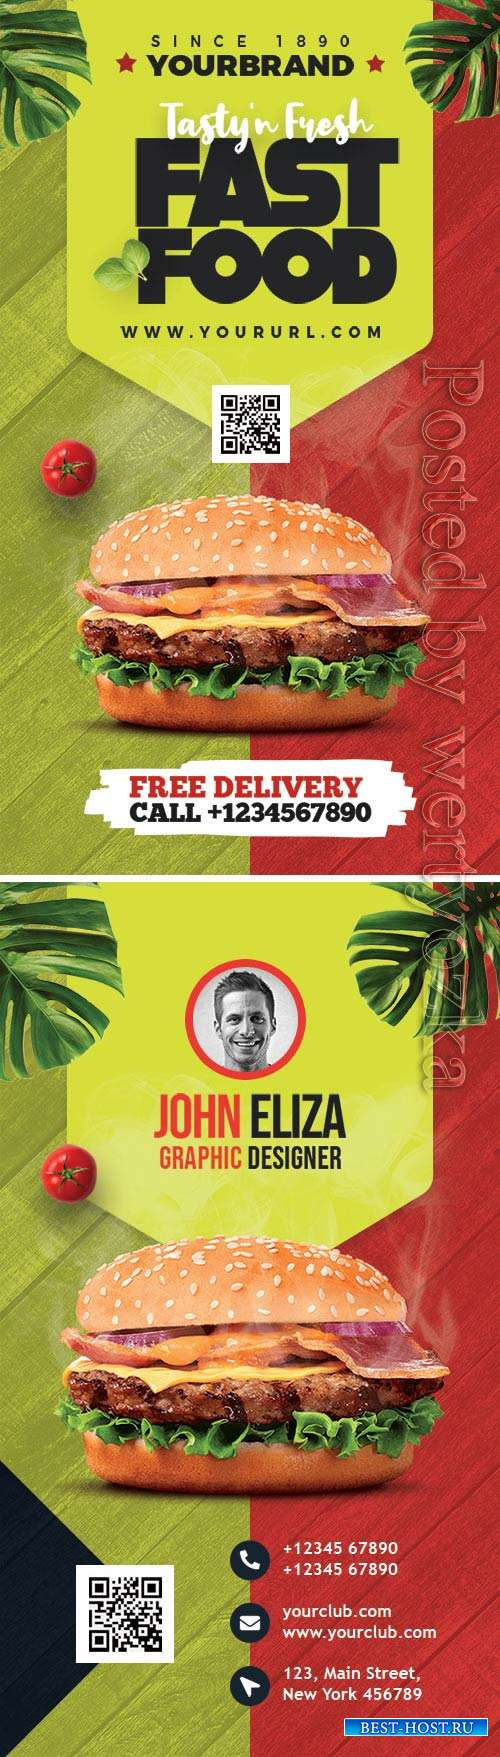 Restaurant Designer Business Card PSD Template